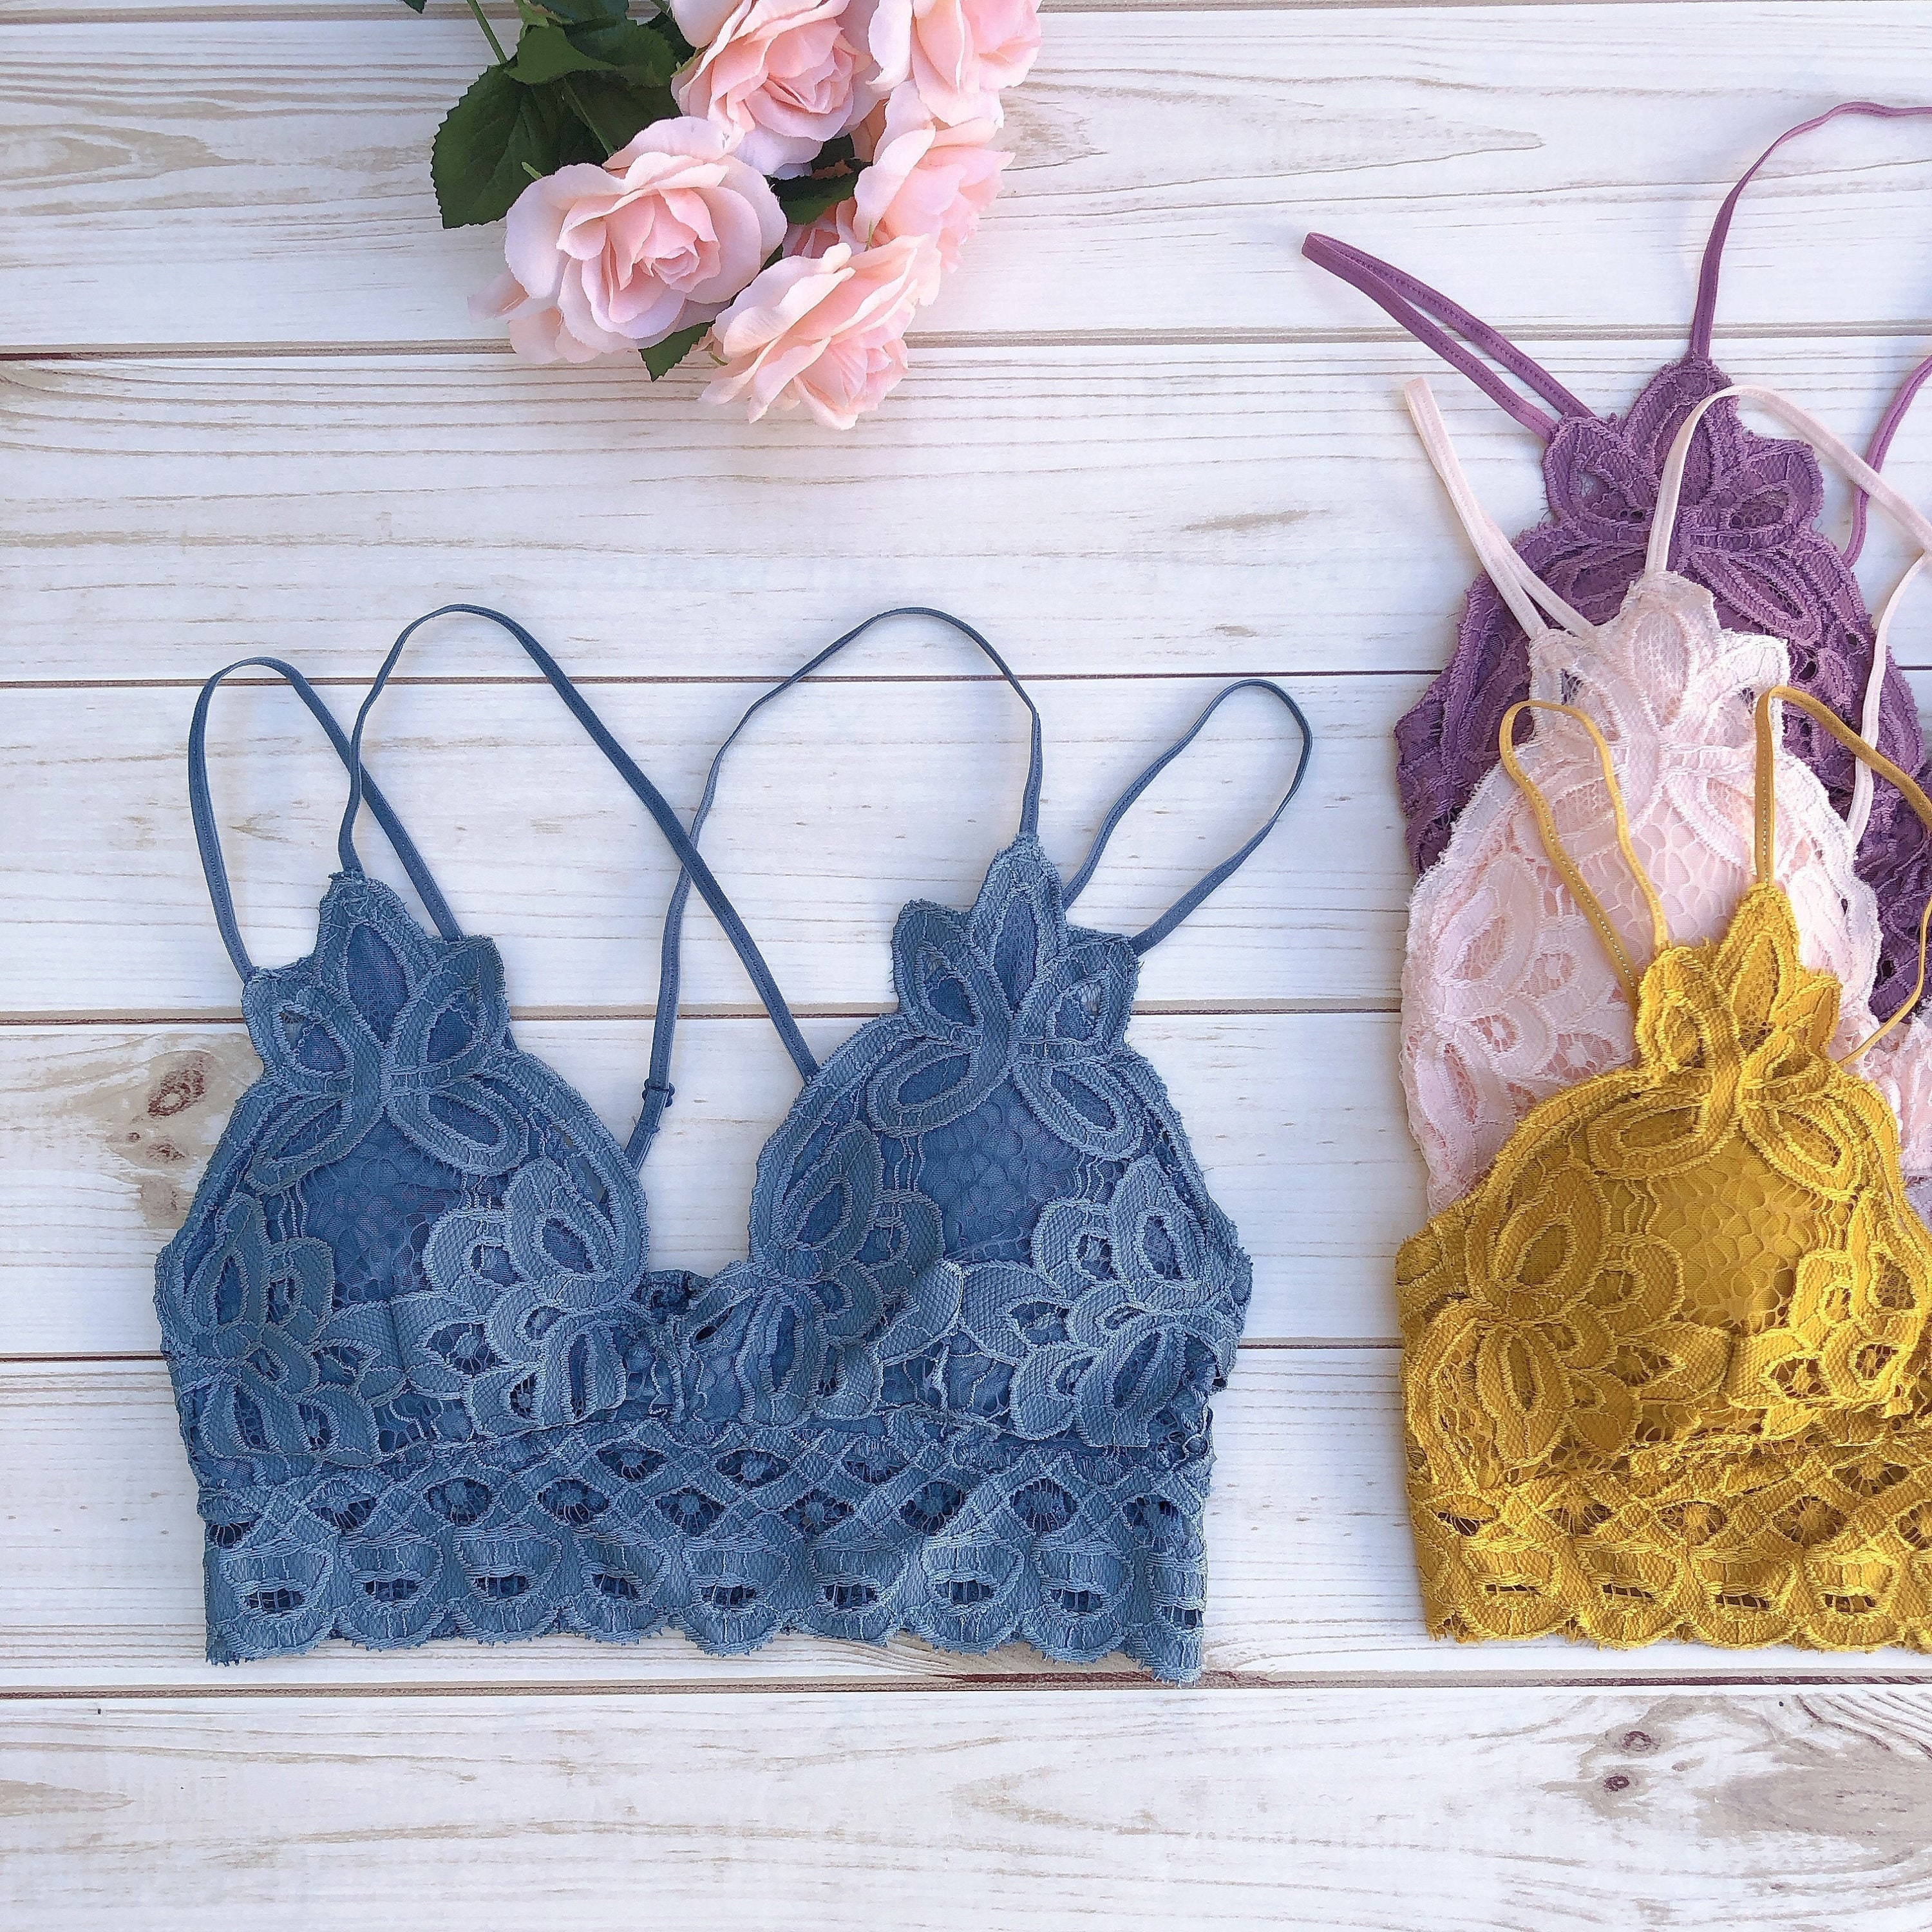 dbf7af6da3b Beautiful Padded Crochet Lace Bralette Top - removable pads - more colors -  long line bra